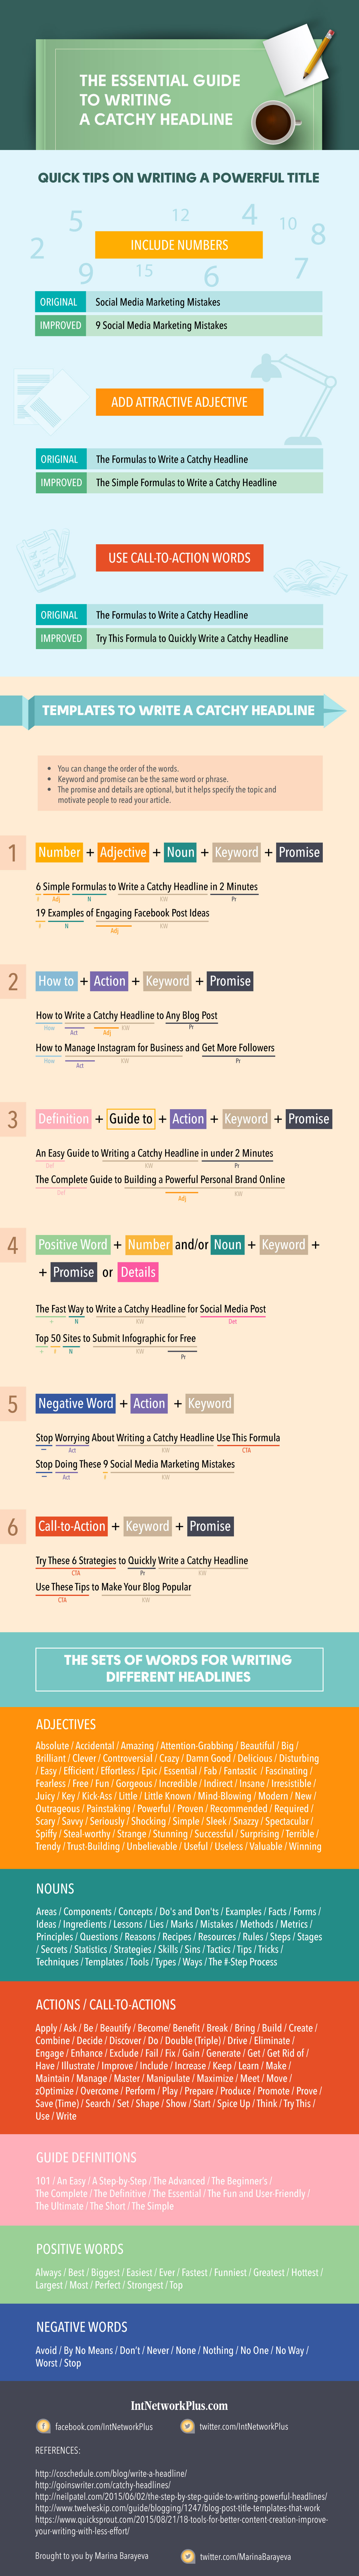 How to write the best headlines